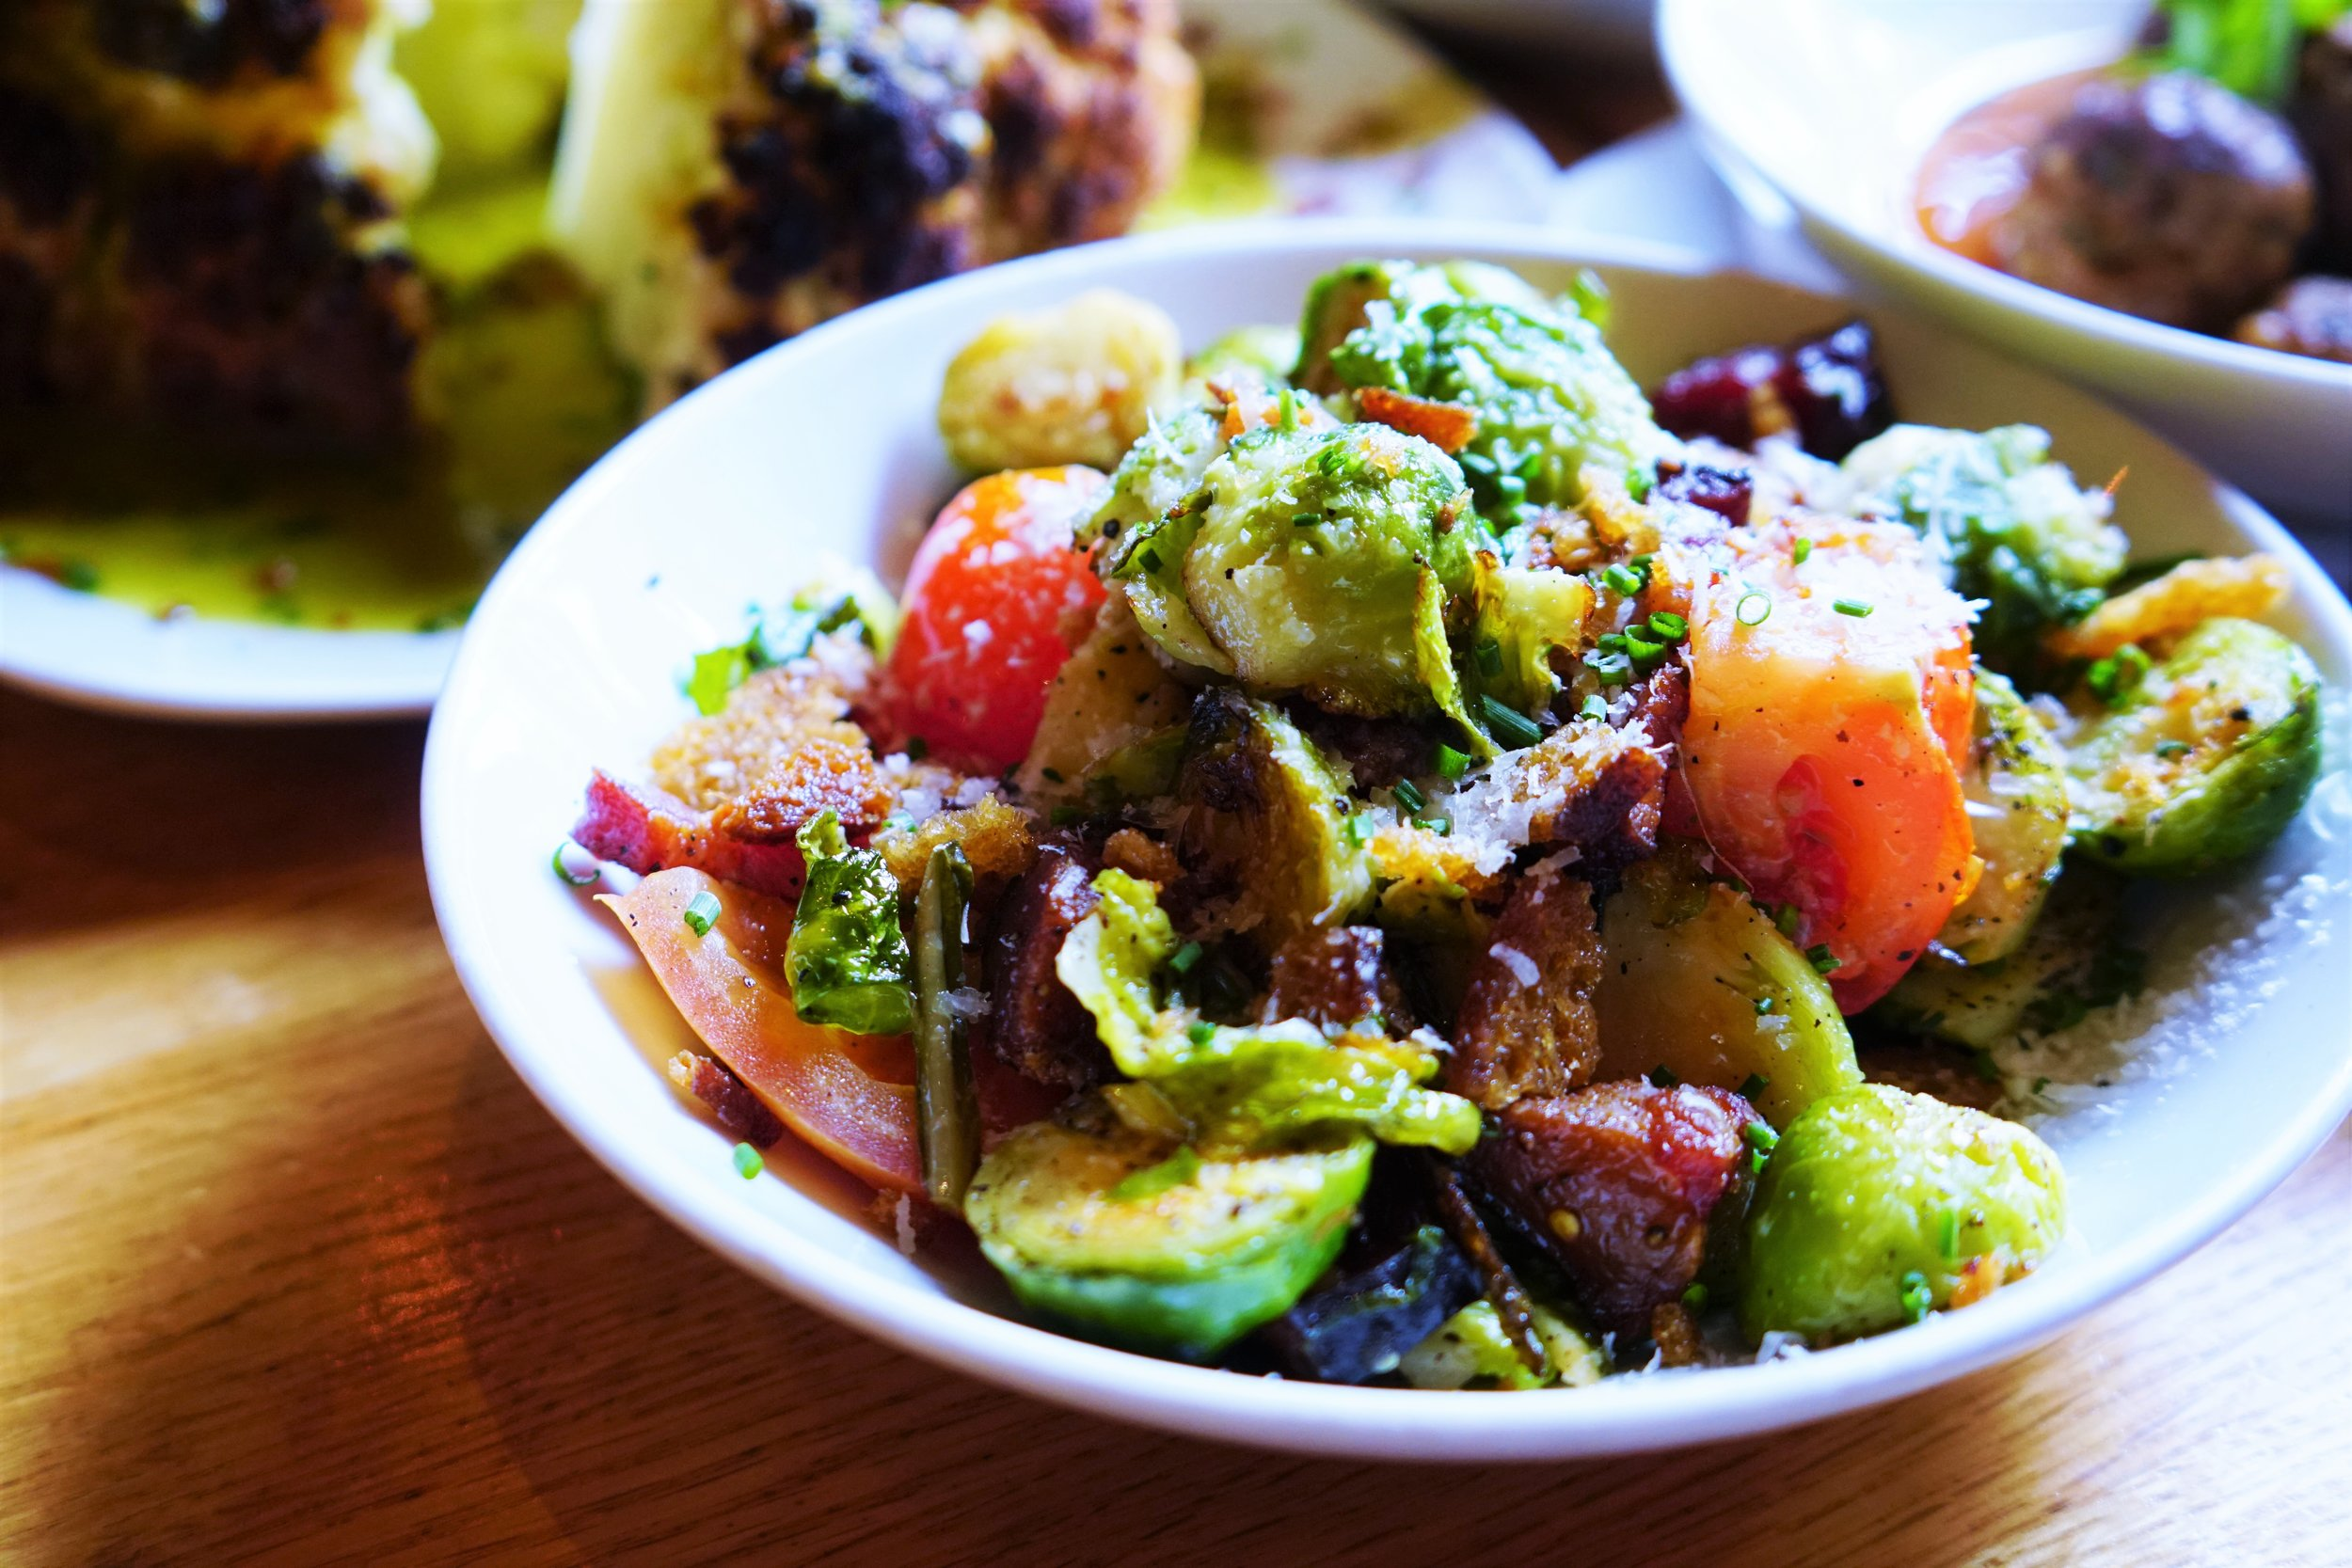 Brussels Sprouts with Basil, Lardon, Tomato, Garlic Crouton, and Pecorino Cheese at Tip Tap Room in Boston